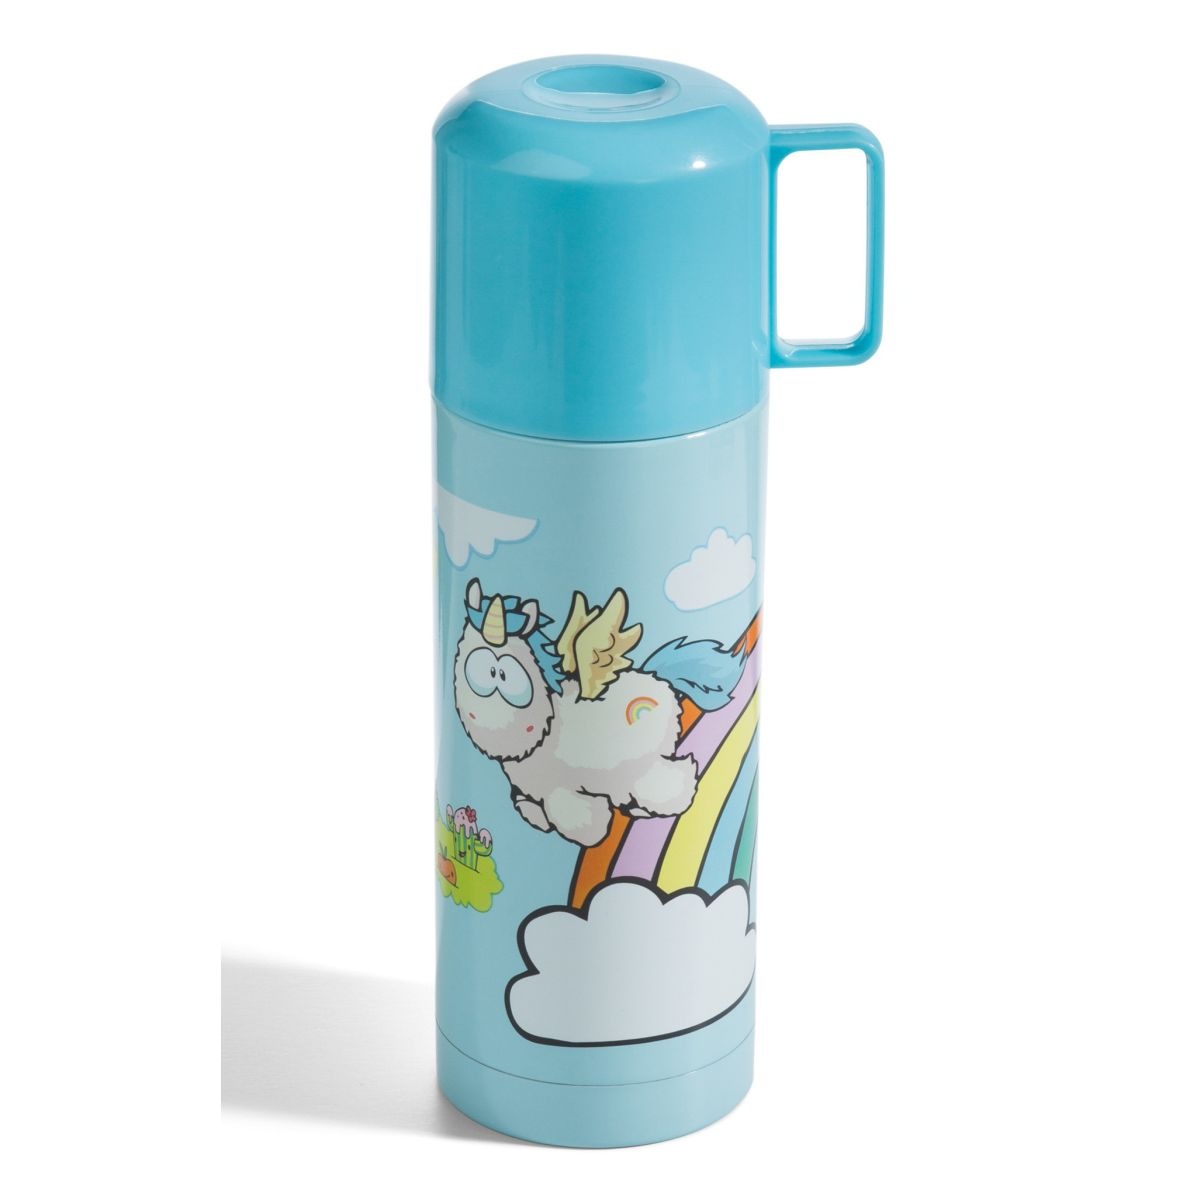 Nici Thermoskanne Einhorn Theodor, 350 ml